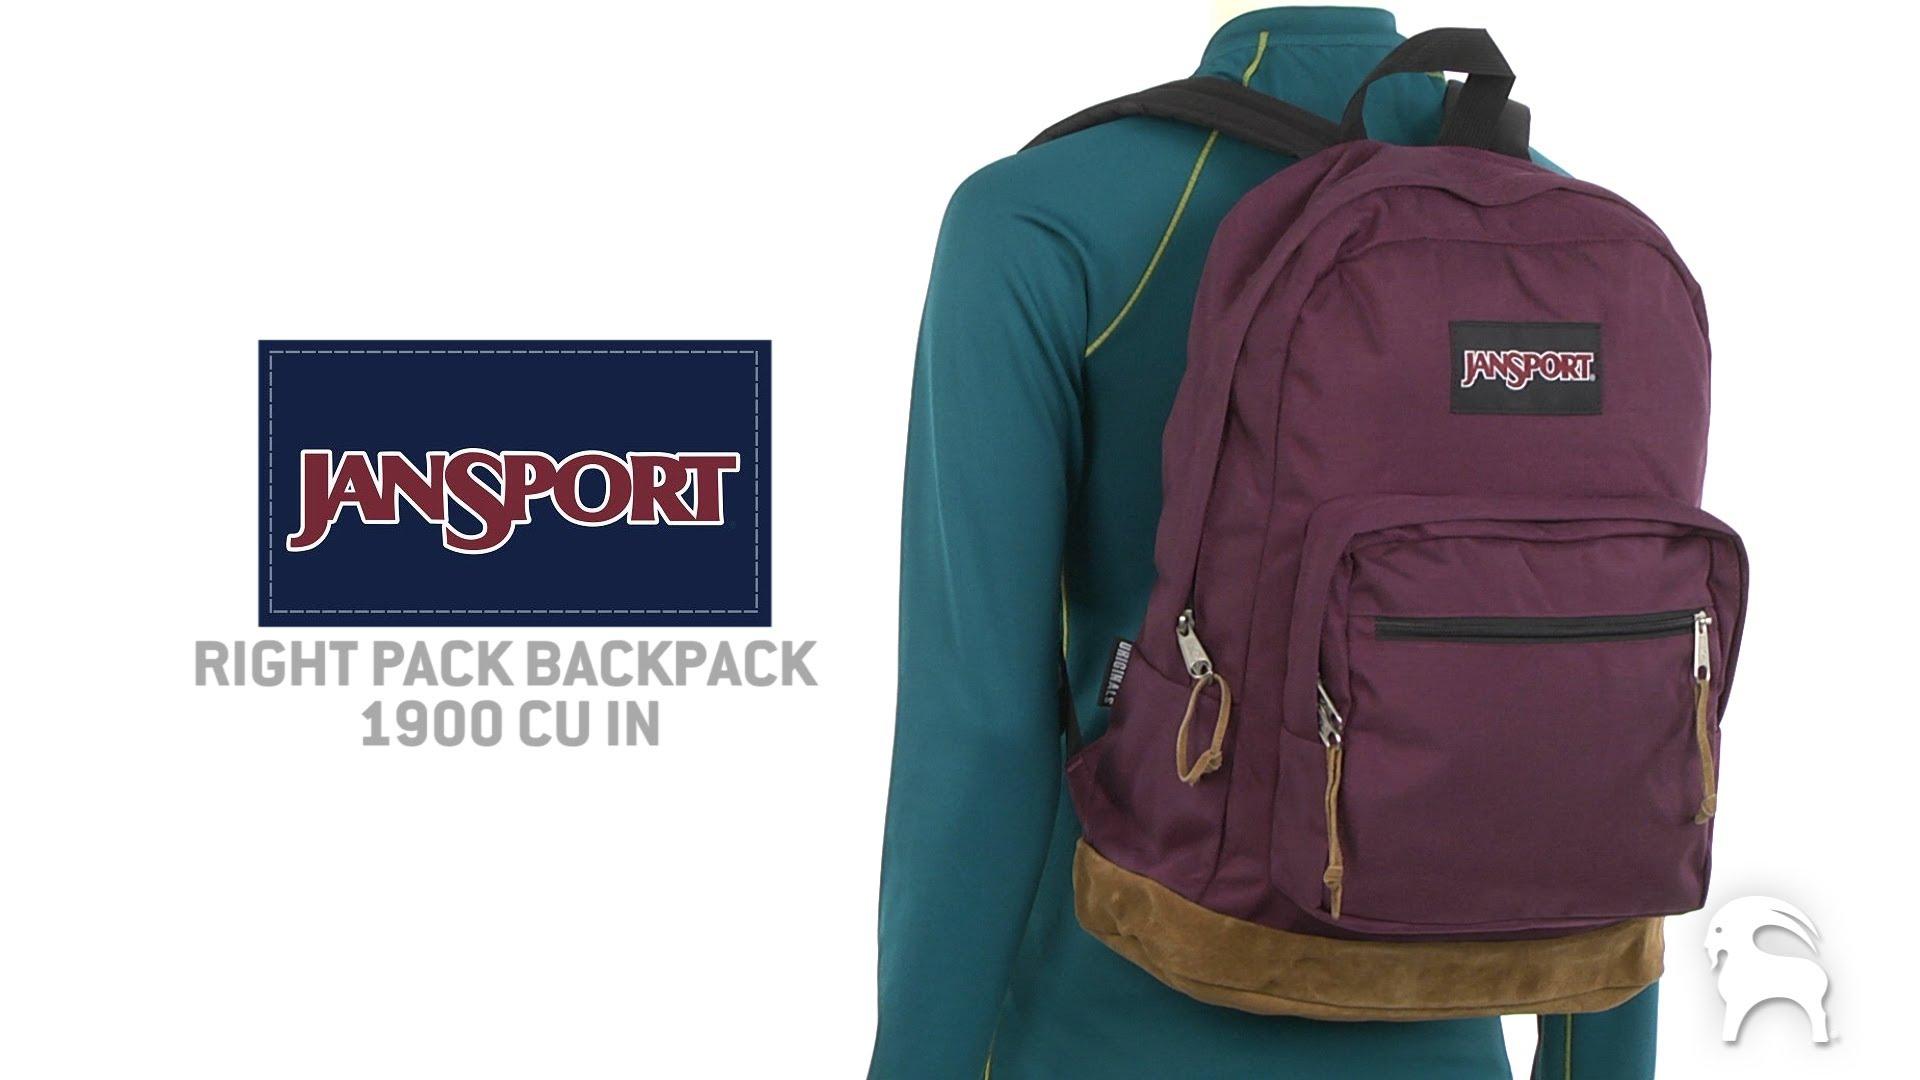 Jansport Right Backpack 8WgWKBto